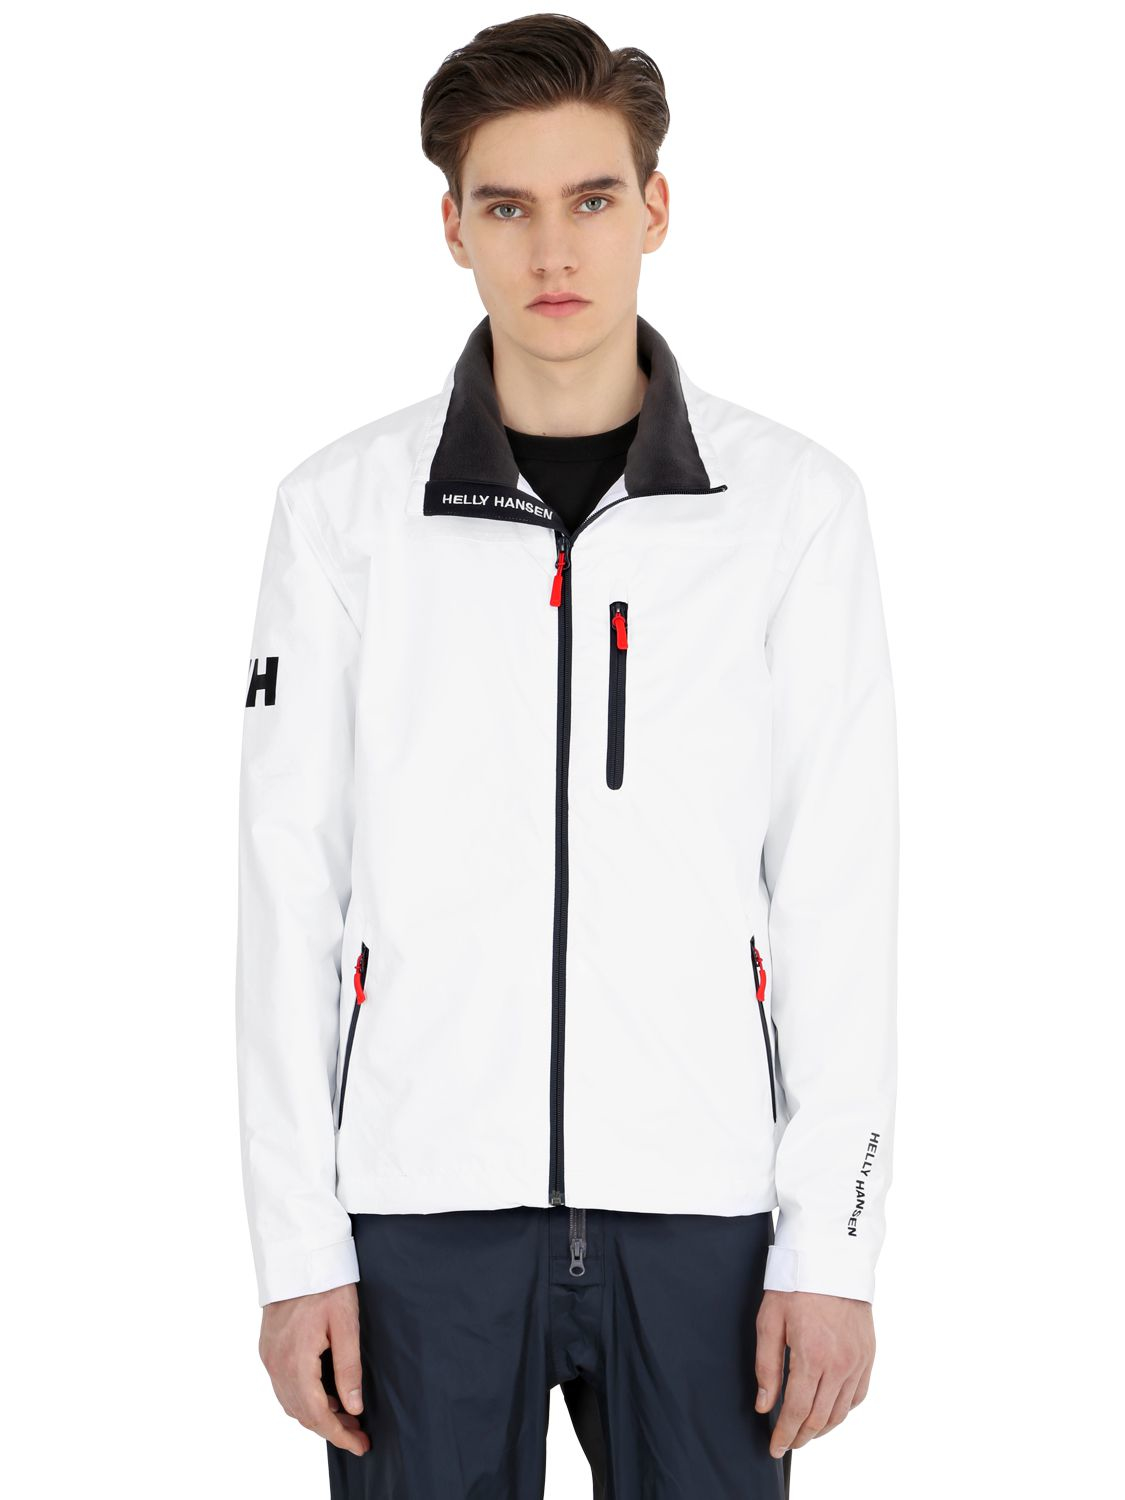 lyst helly hansen crew midlayer jacket in white for men. Black Bedroom Furniture Sets. Home Design Ideas